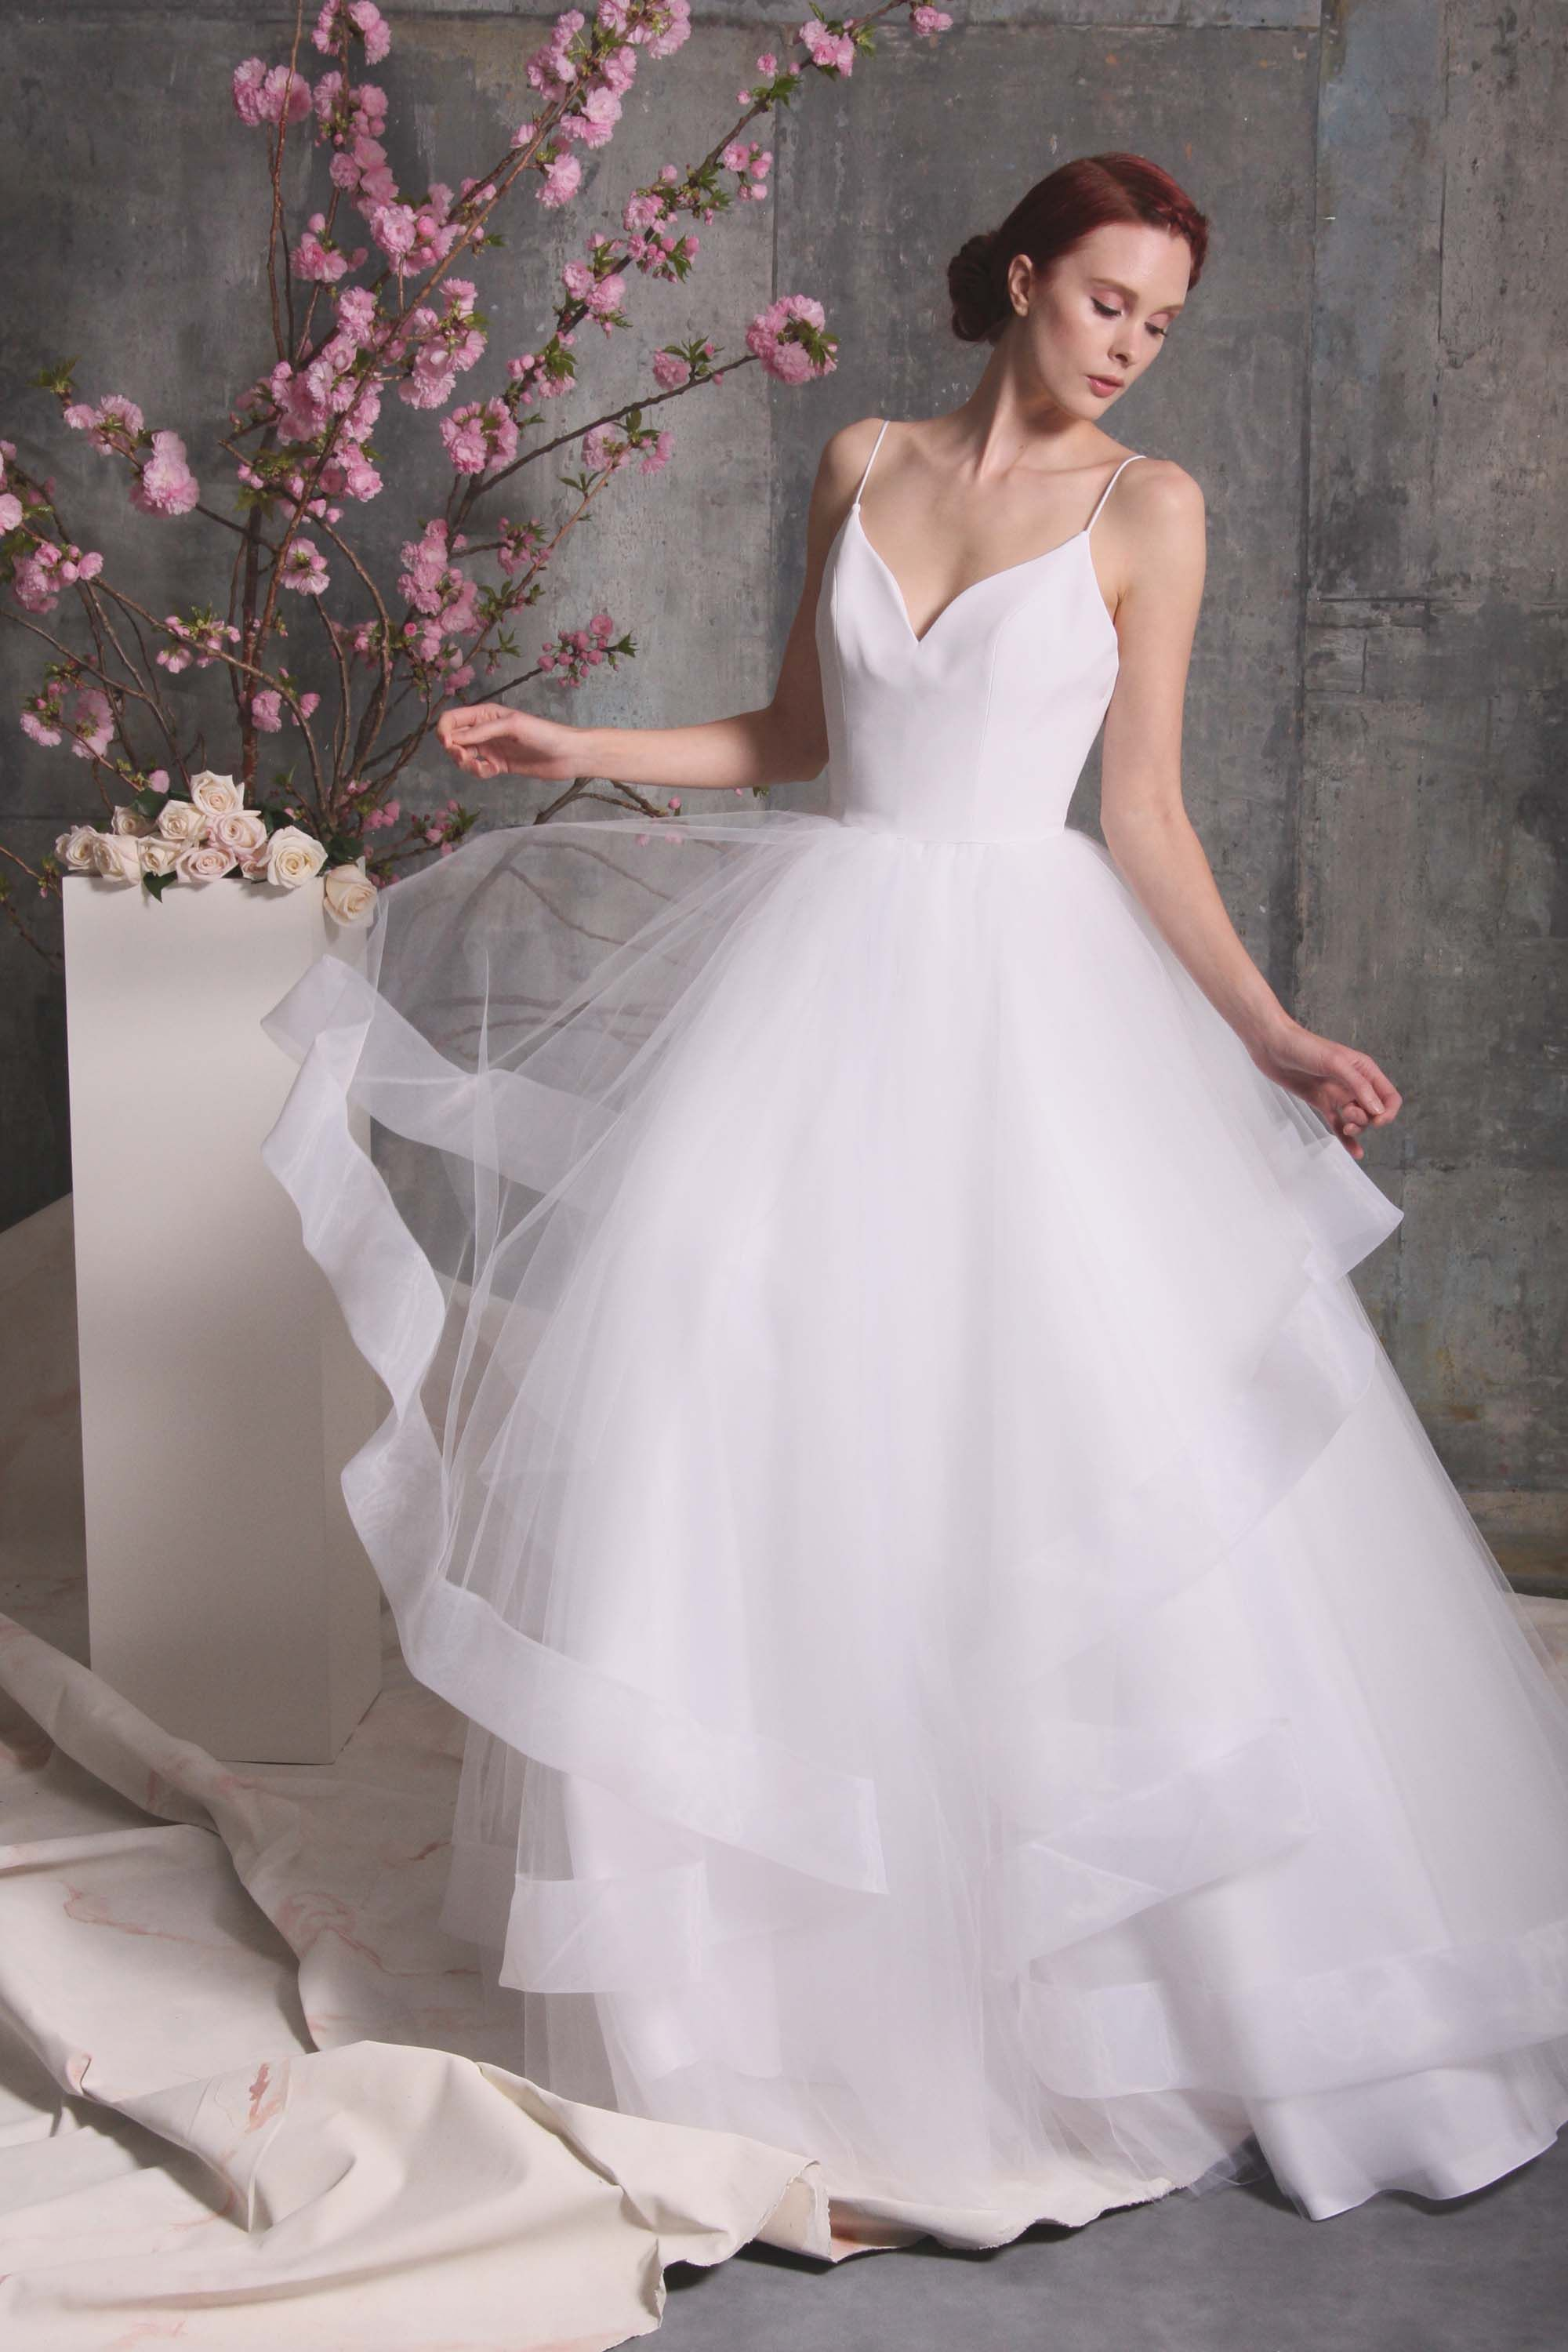 Best Of Bridal: The Most Beautiful Wedding Dresses Of Bridal ...